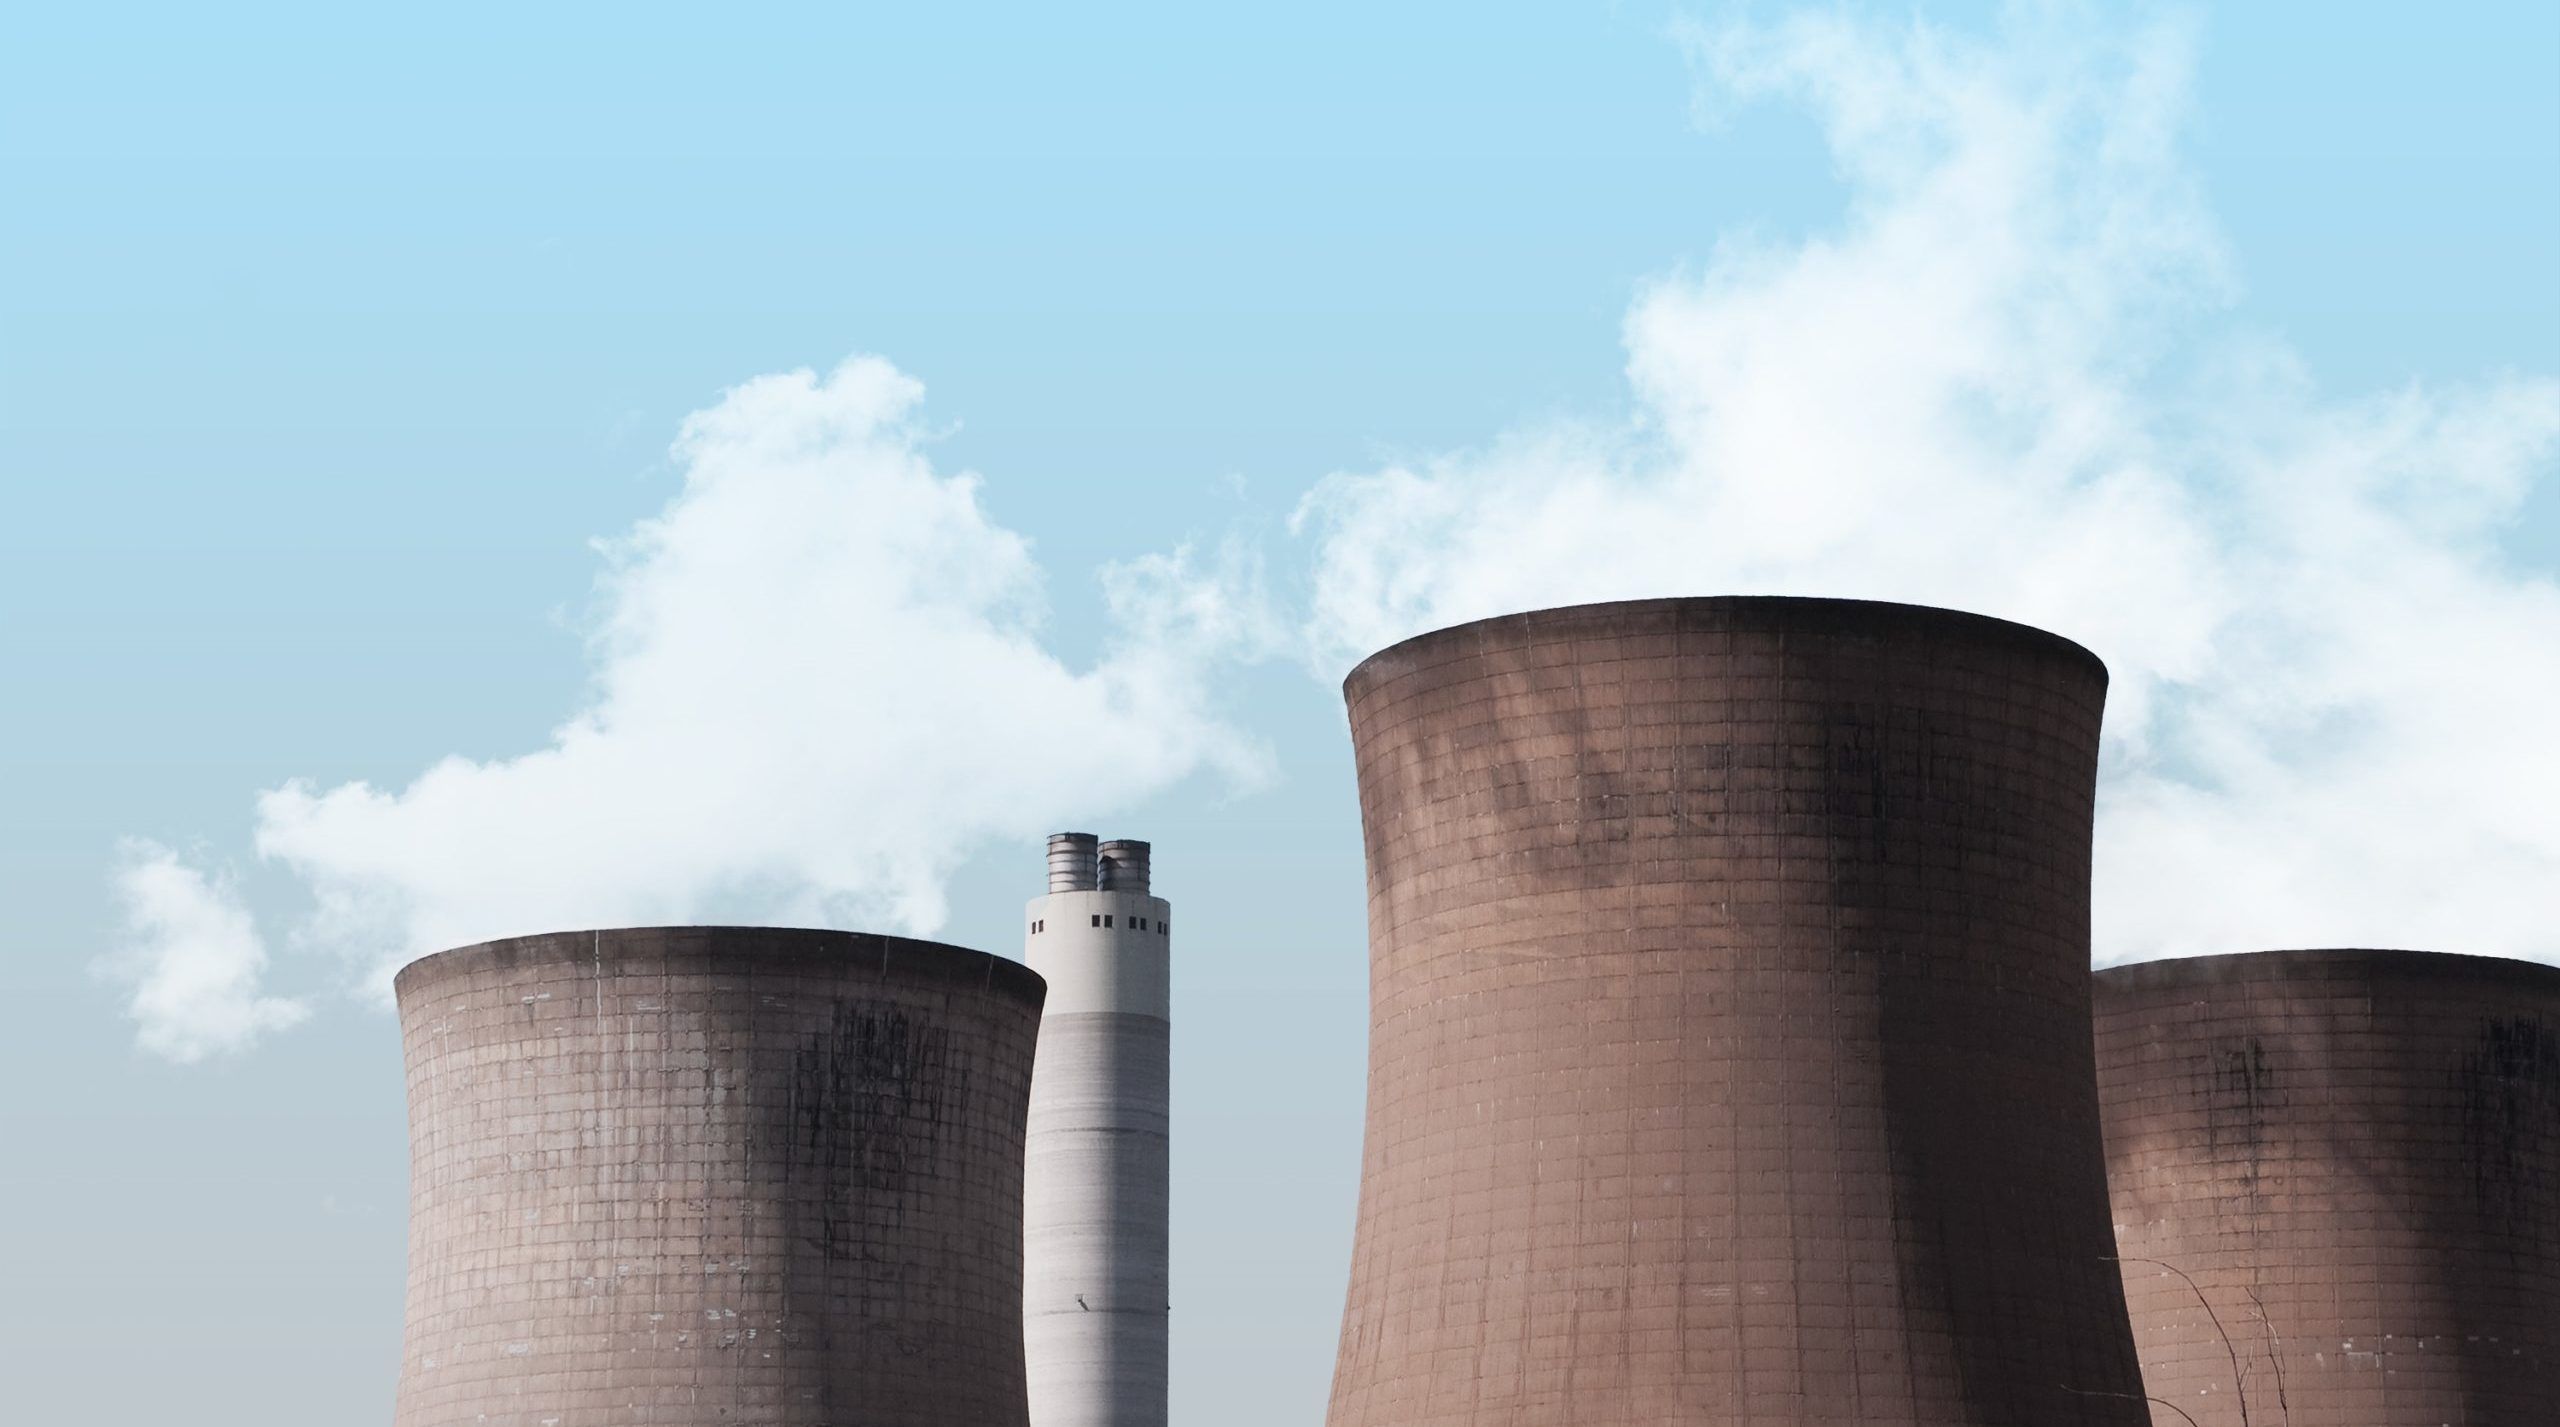 Nuclear enegy - cooling towers